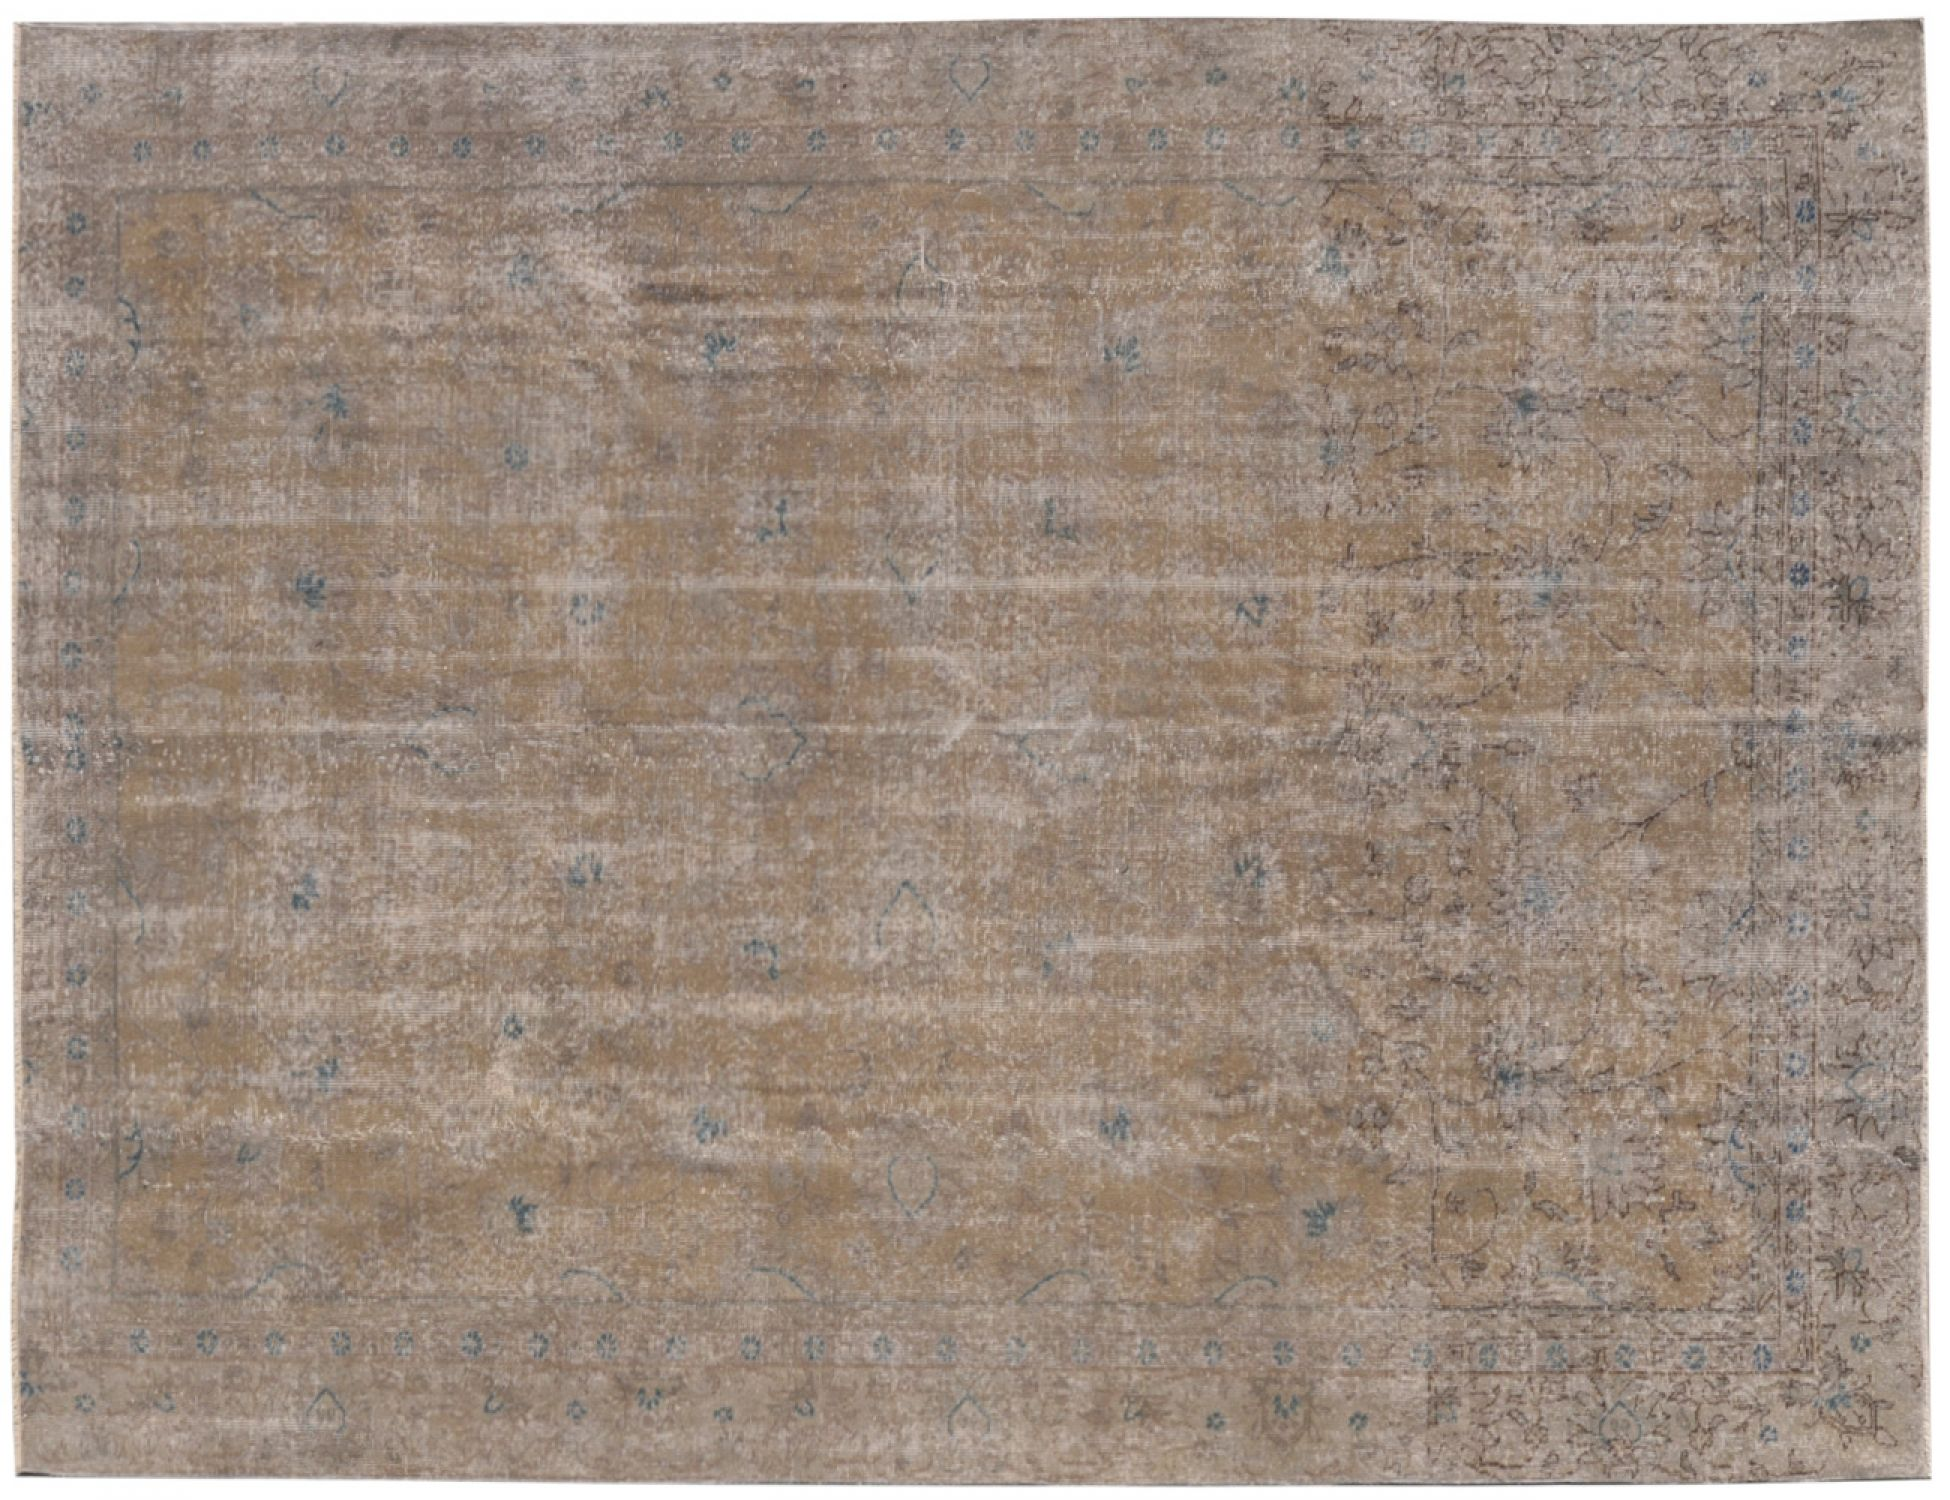 Vintage Carpet  grey <br/>284 x 209 cm